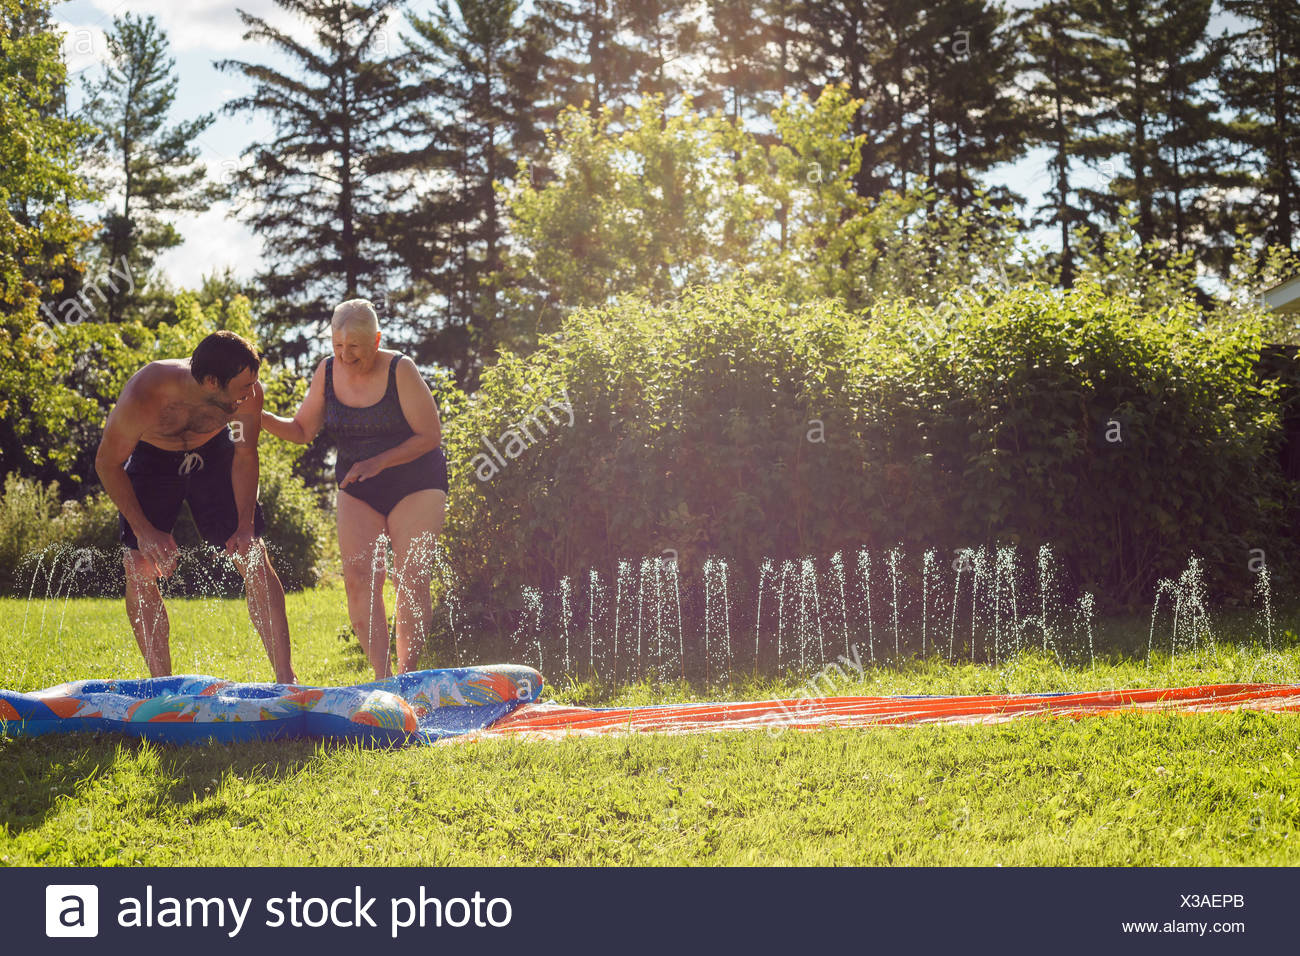 Slide Slip Stock Photos Amp Slide Slip Stock Images Alamy